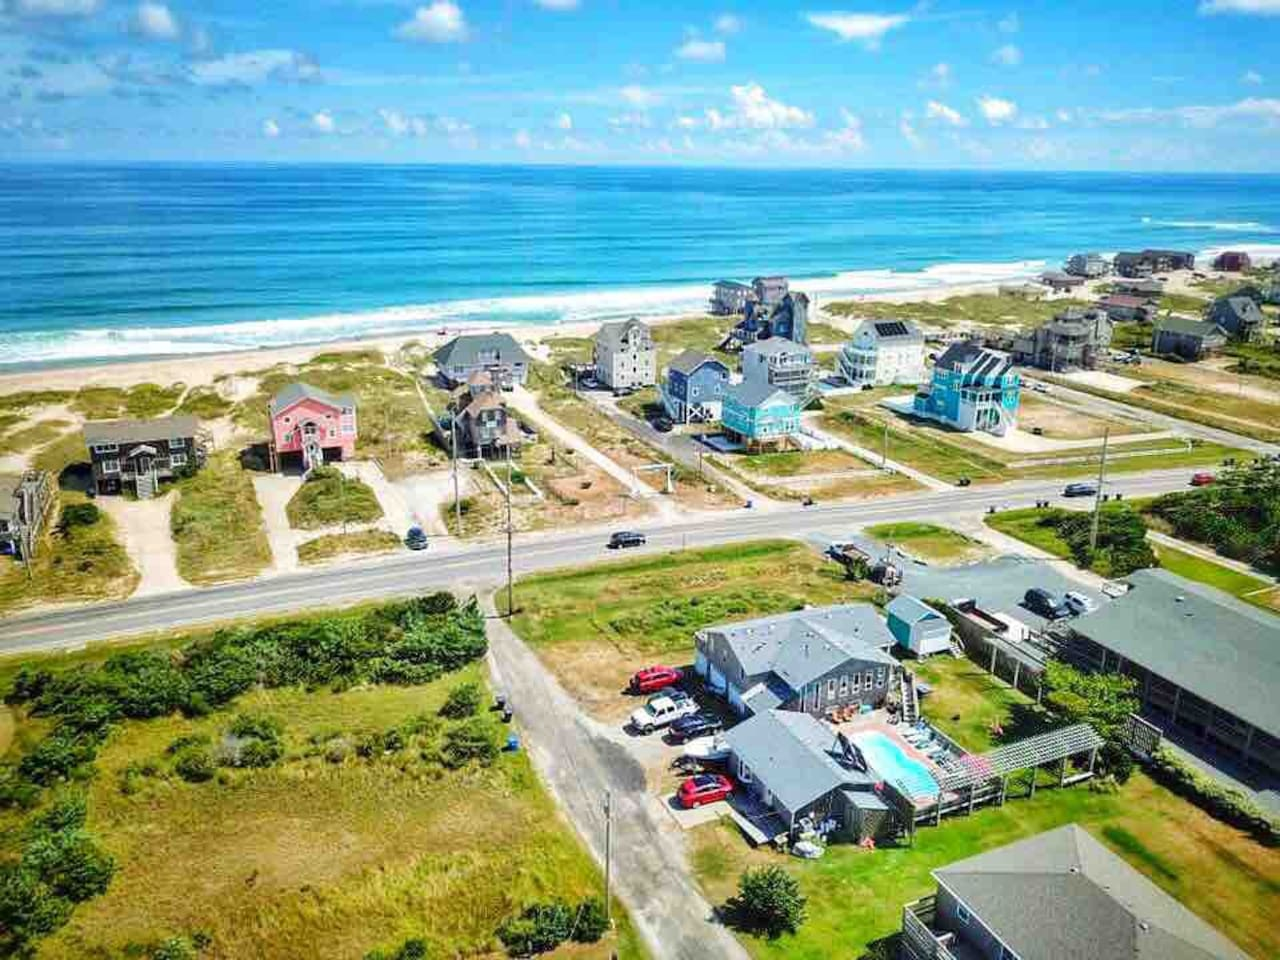 One house away, directly across the street from the ocean! Nowhere else on the obx will you be so close to both bodies of water!